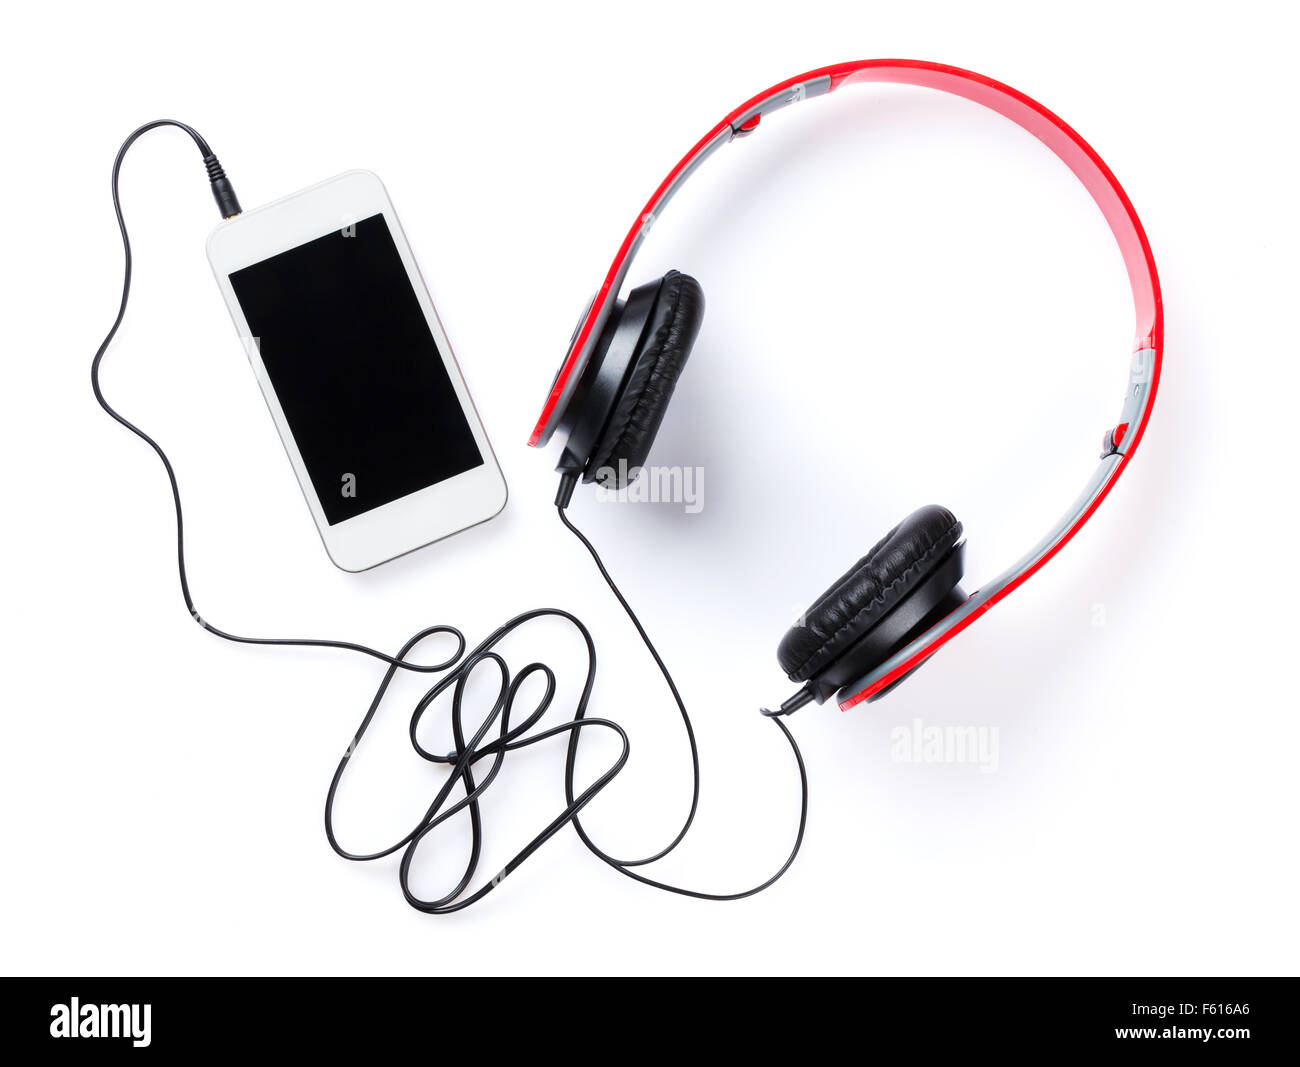 Headphones and smartphone. Isolated on white background - Stock Image